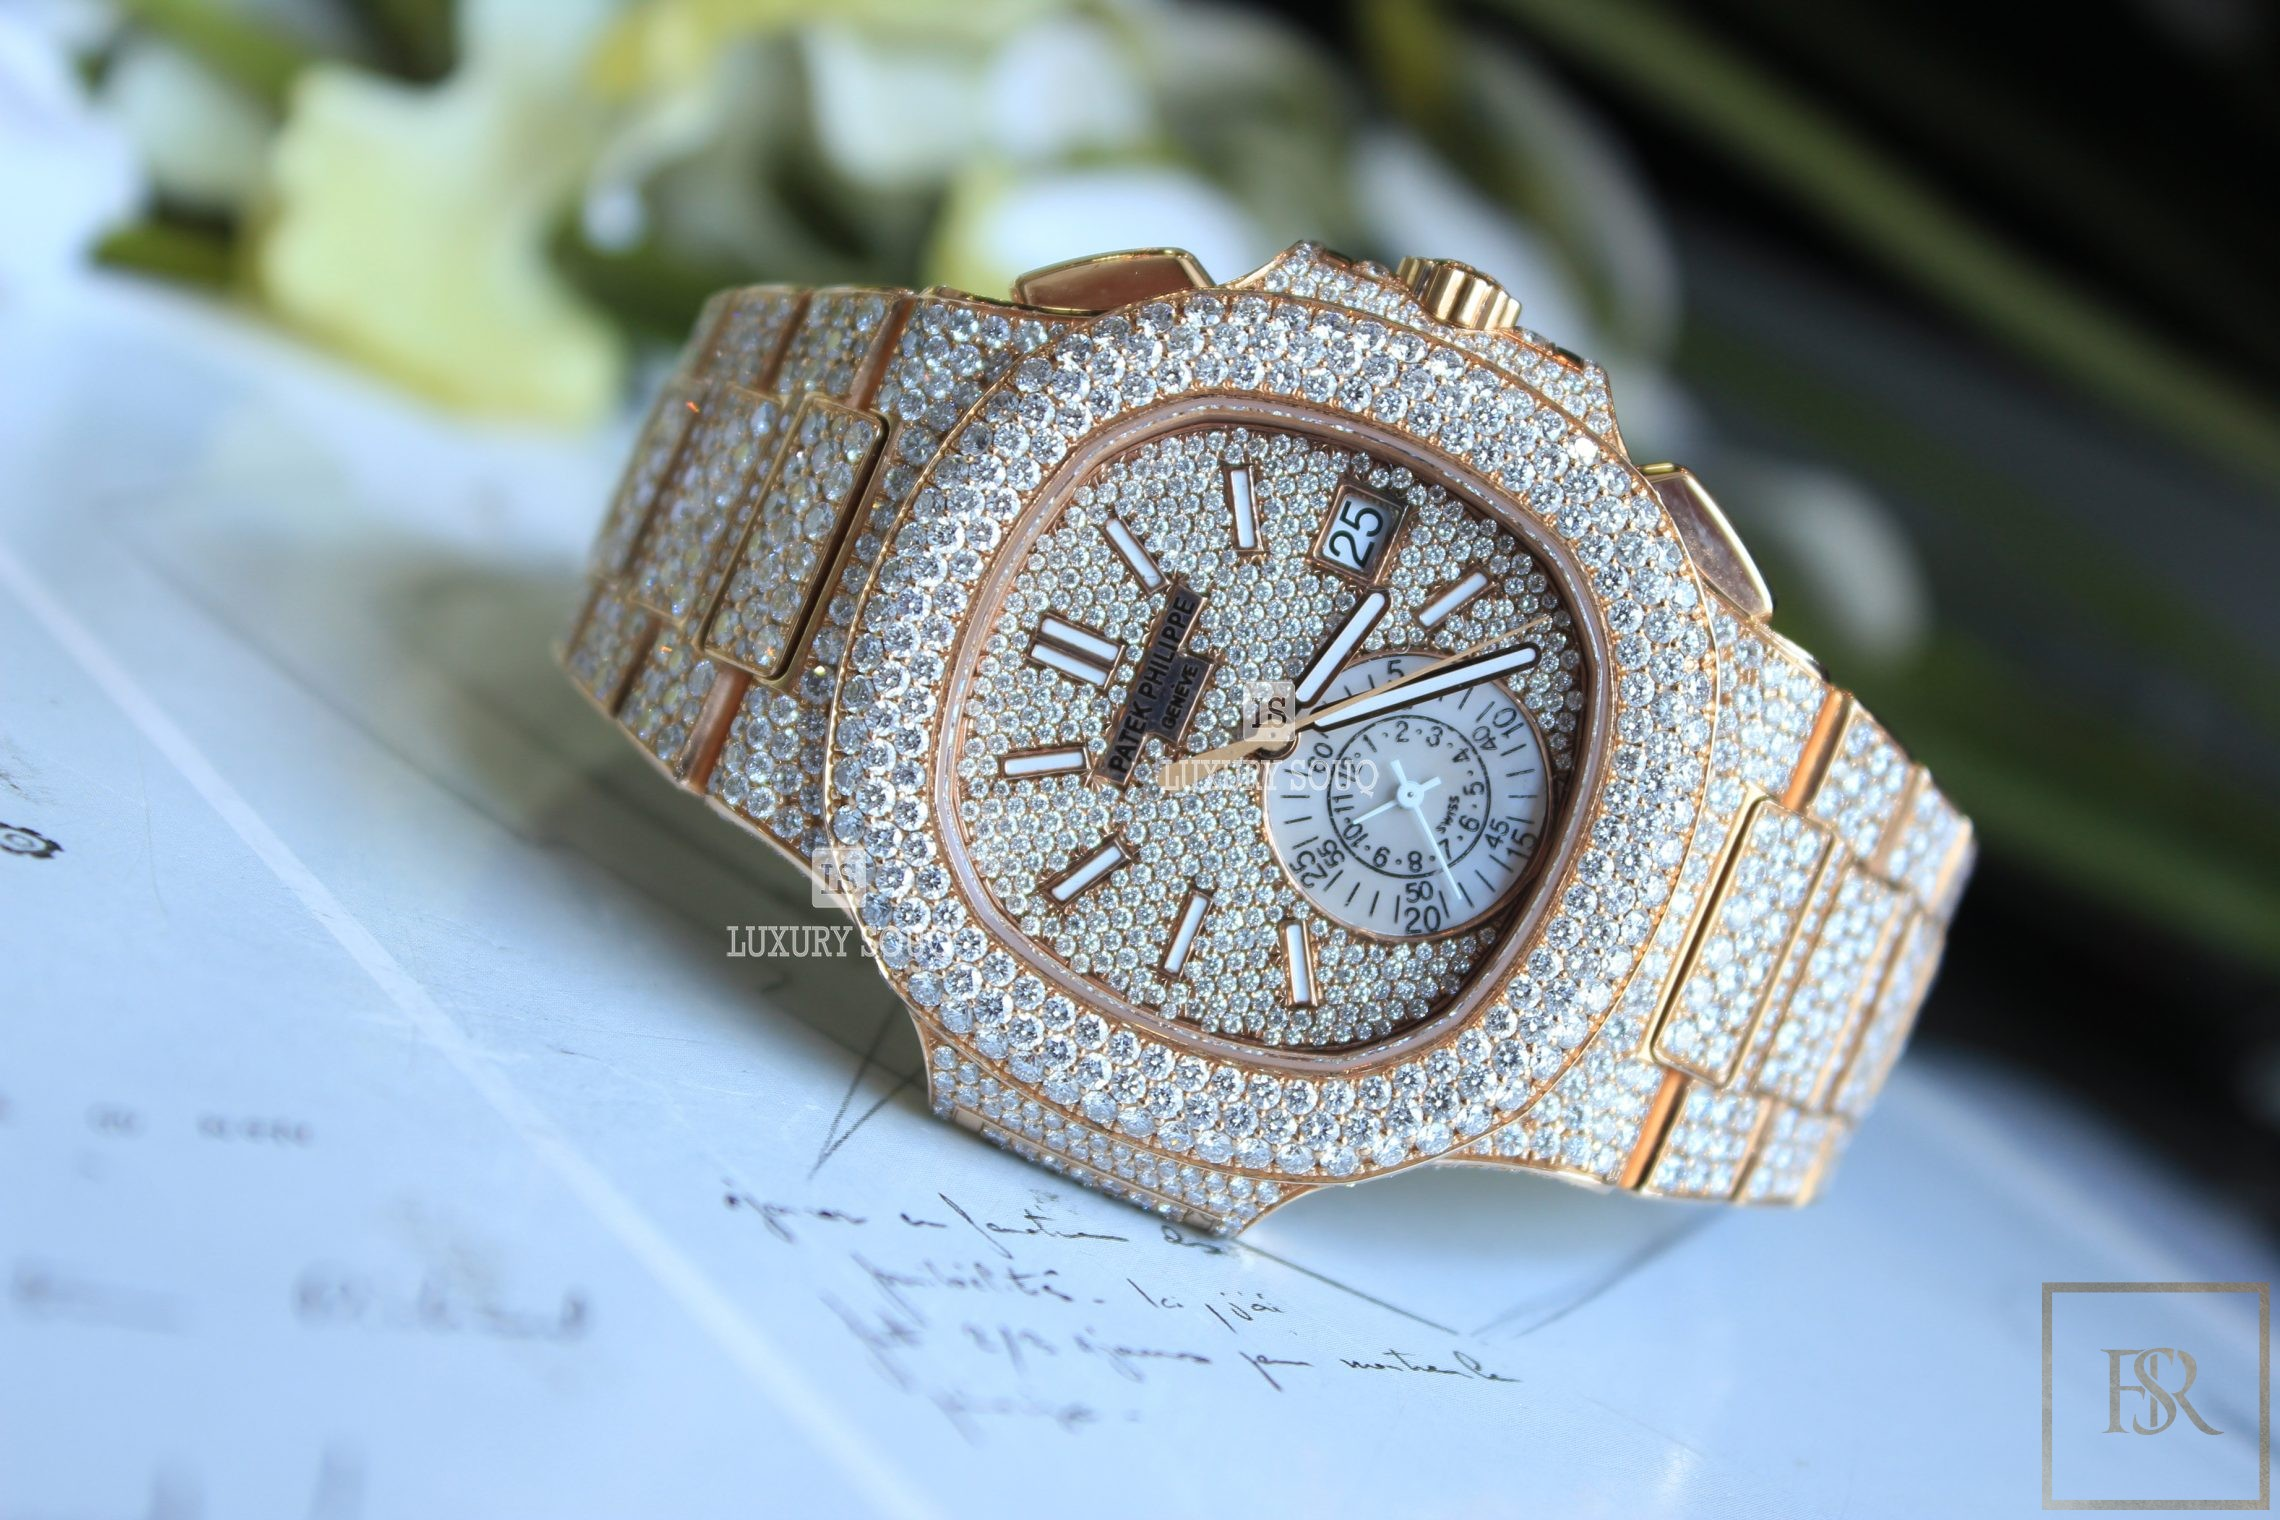 Watch PATEK PHILIPPE Nautilus Chronograph Date Diamond Pave Set  for sale For Super Rich